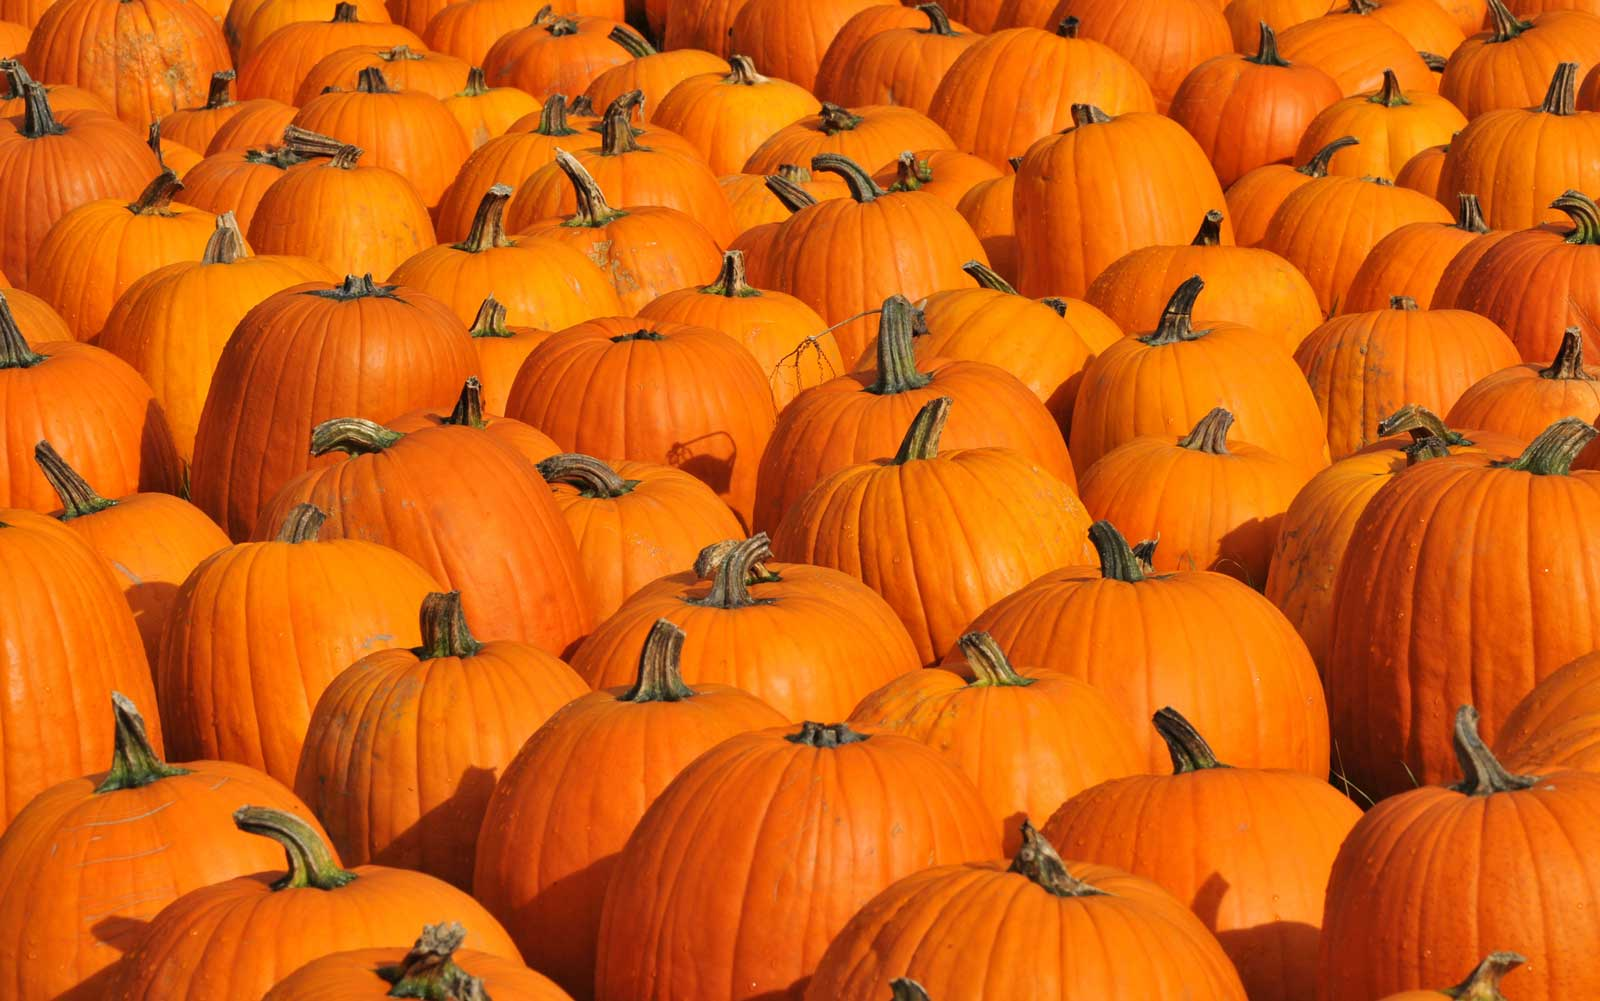 The 25 Best Pumpkin Patches in the U.S.